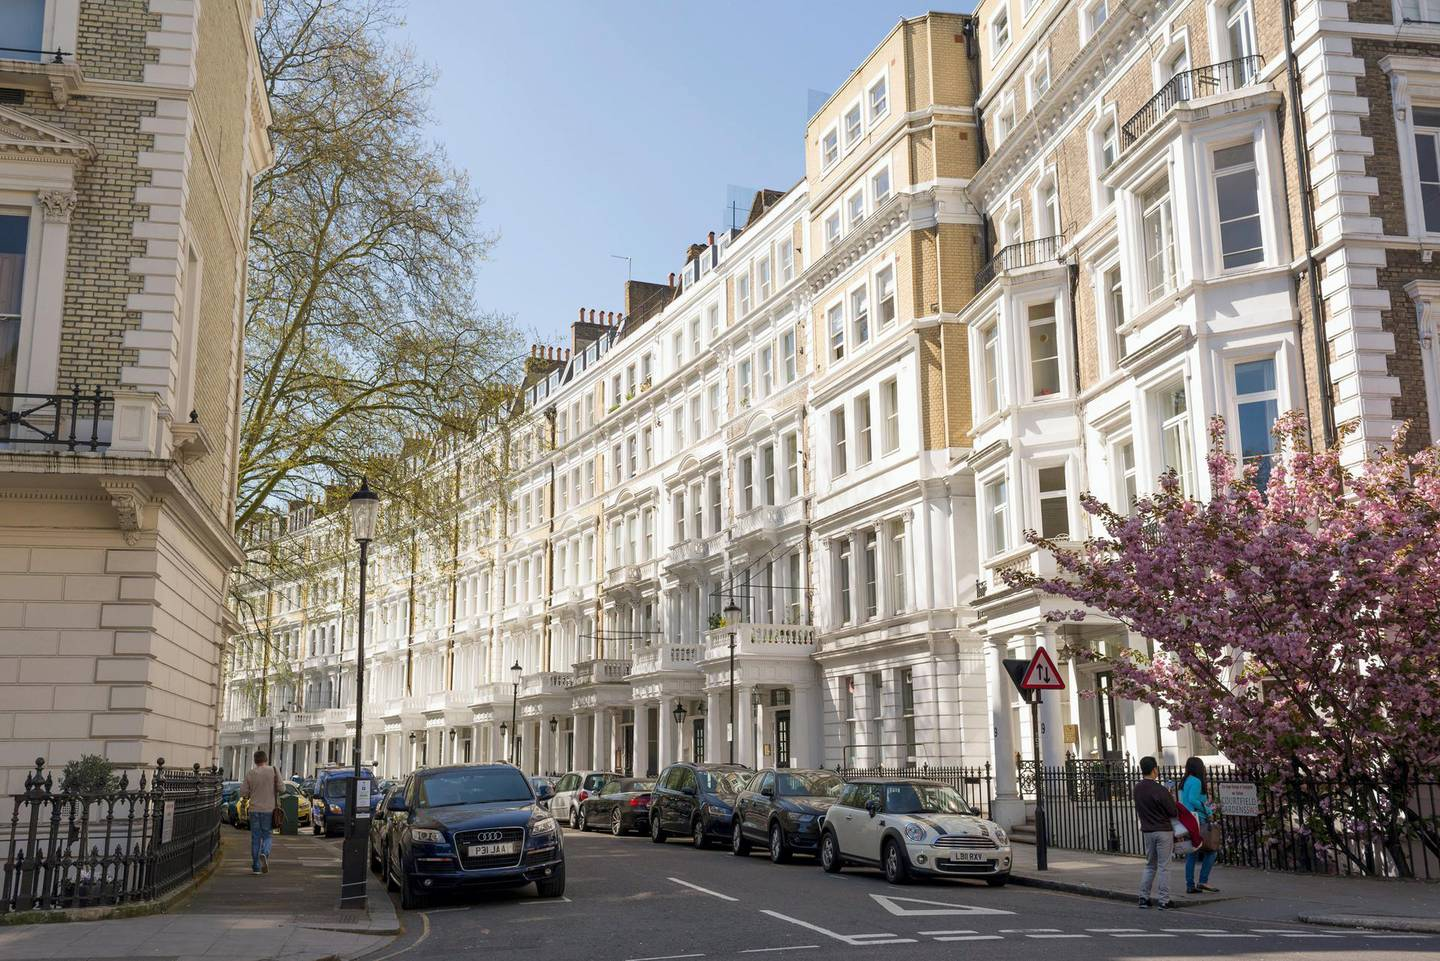 J4JDAE View of street with restored elegant Victorian Edwardian luxury houses in the exclusive area of South Kensington, London, UK